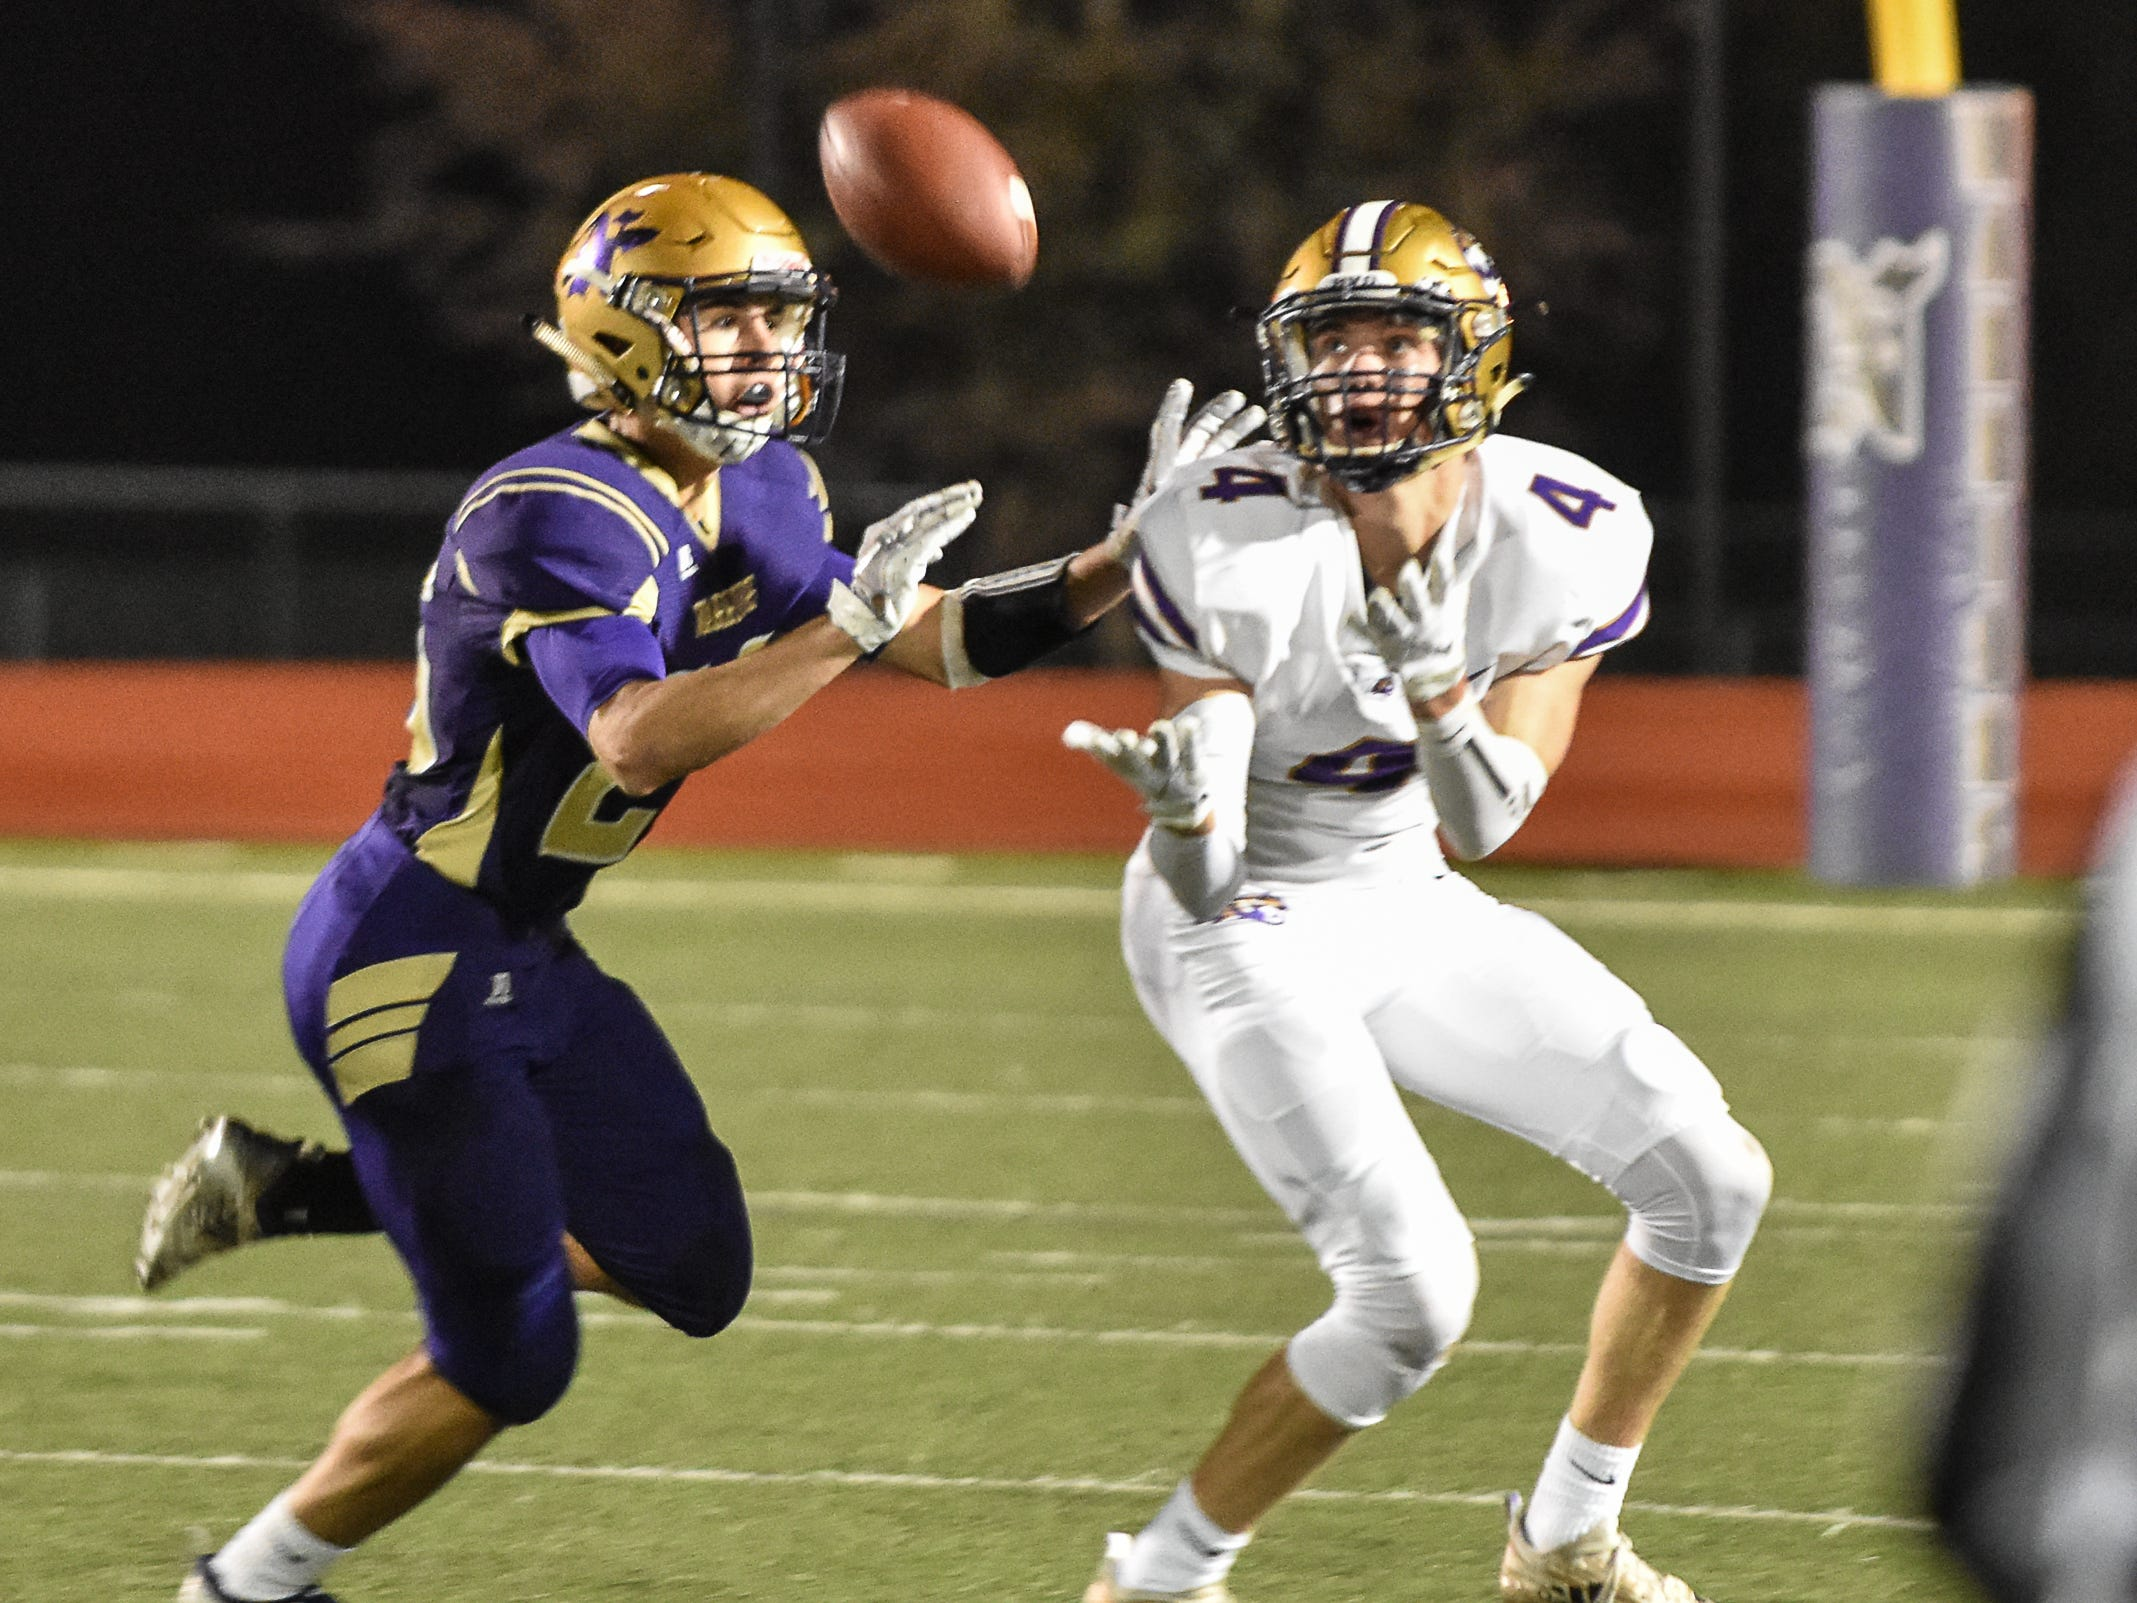 Norwalk's Carson Raper covers a pass to Spencer's Michael Storey during a first-round playoff game Friday in Norwalk. Spencer ended Norwalk's season Oct. 26, 2018, with a 24-20 win in the first round of the Class 3A playoffs.